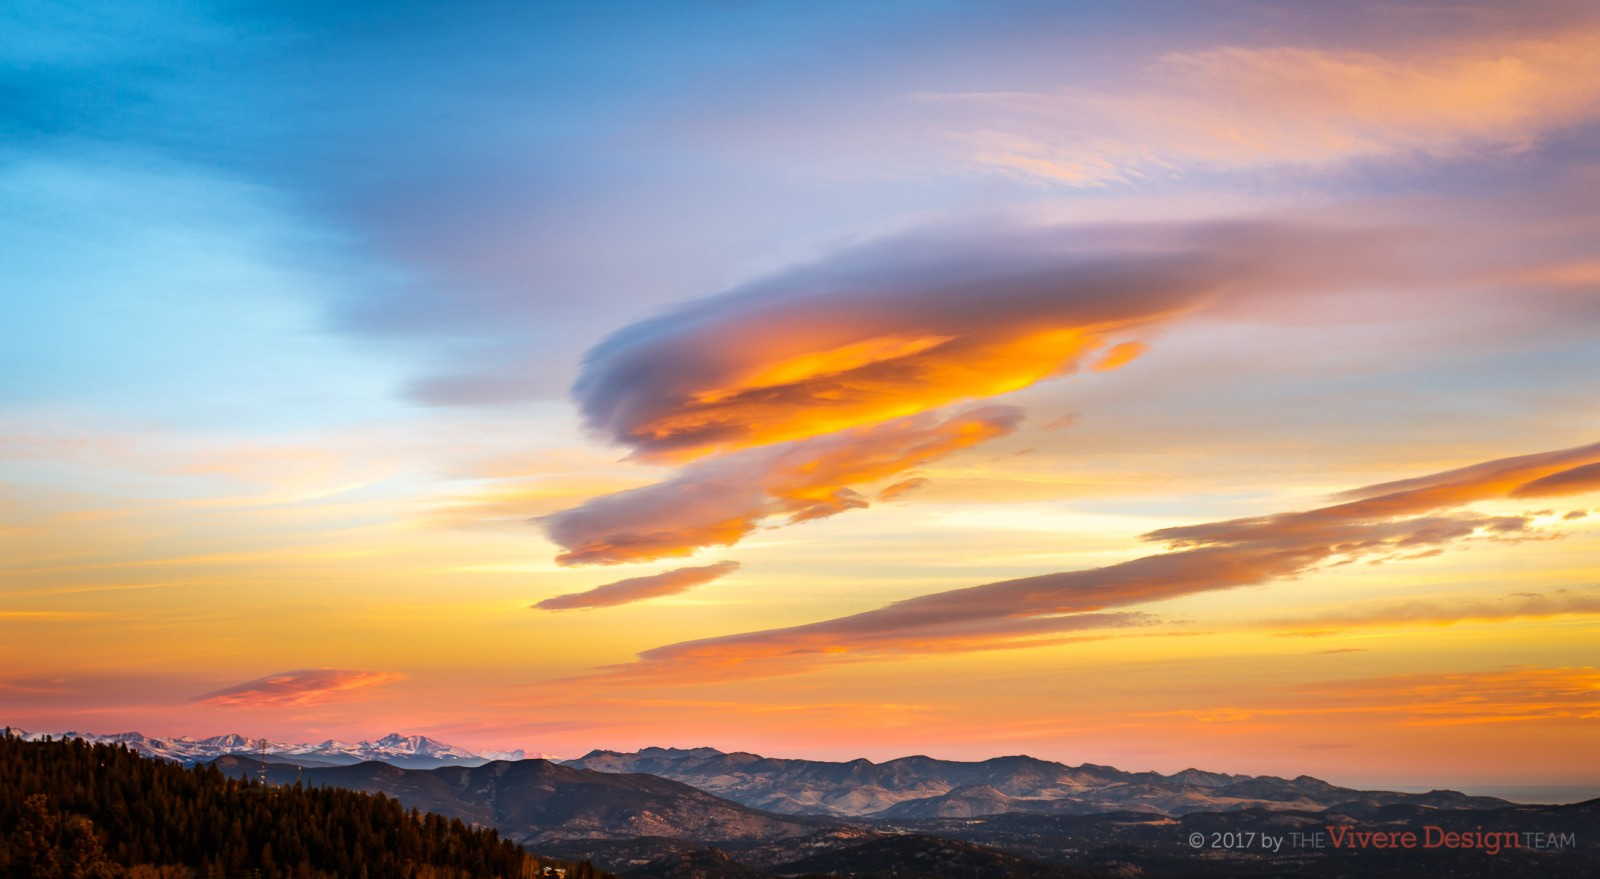 The Vivere Design Team Office Window View -- Sunrise Lenticular Clouds